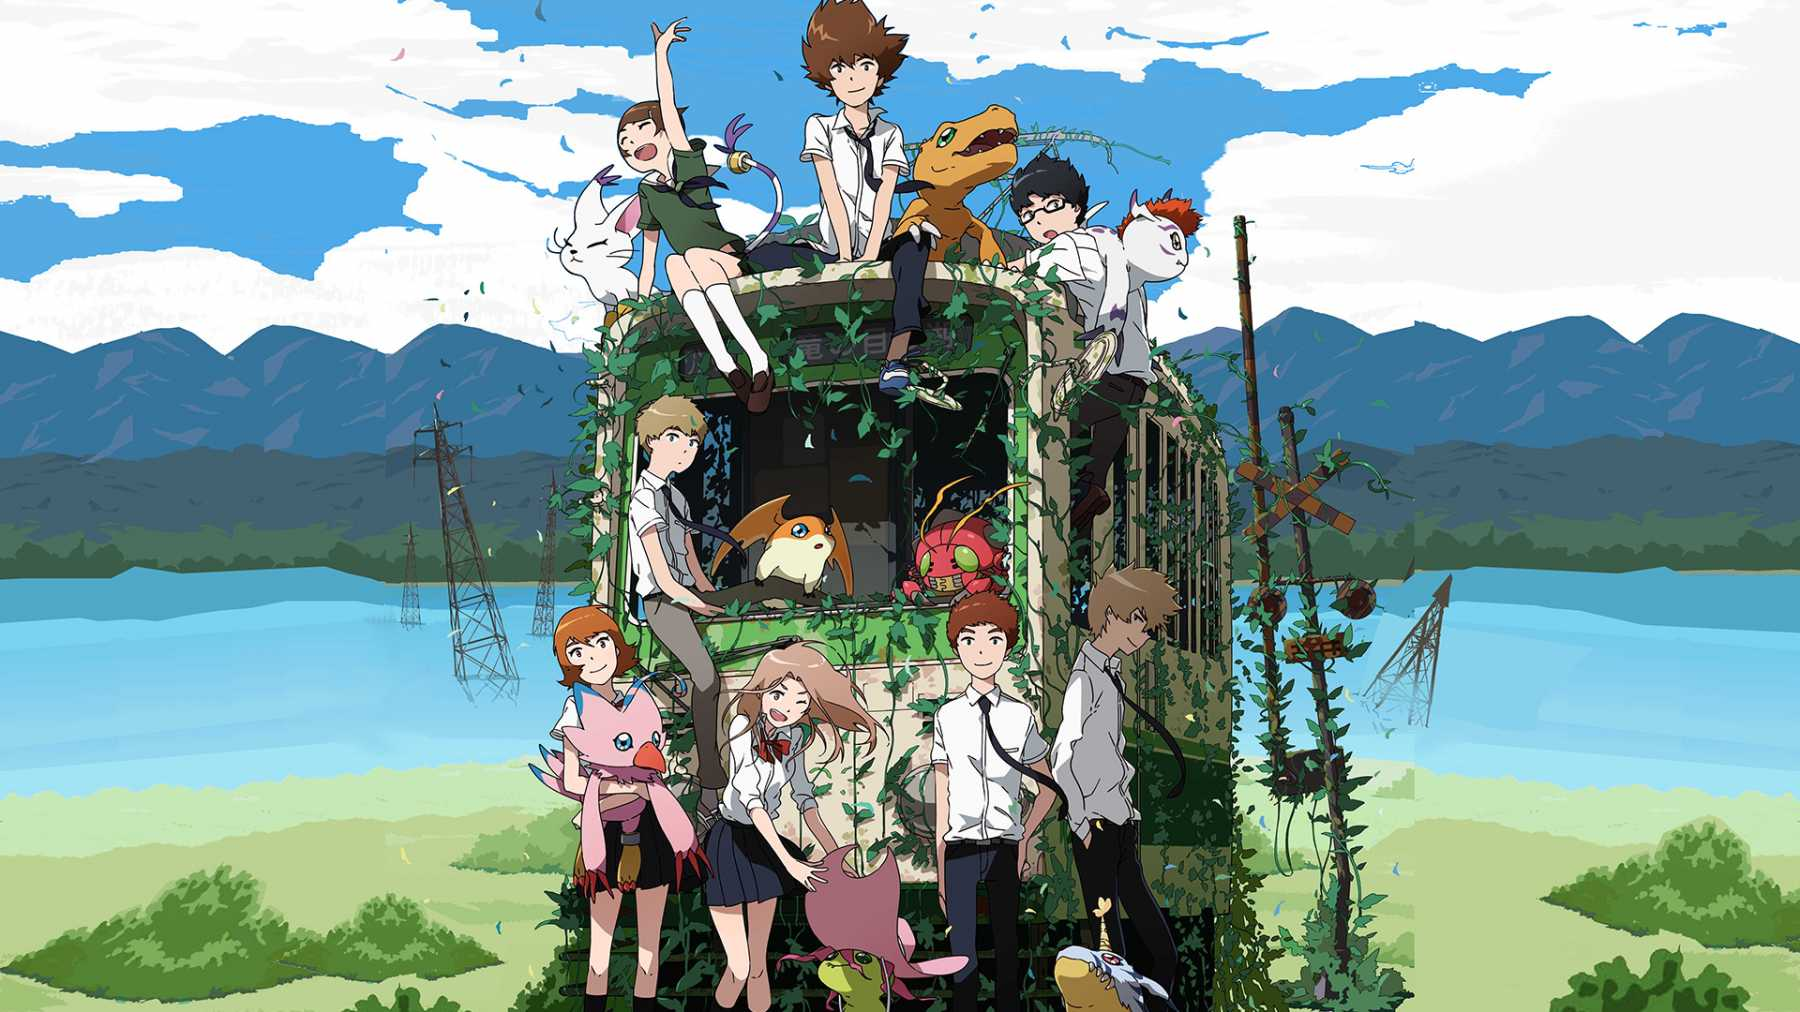 Digimon Adventure Tri 'Reunion' Adds Intensity To Nostalgia  | Digimon Adventure Tri